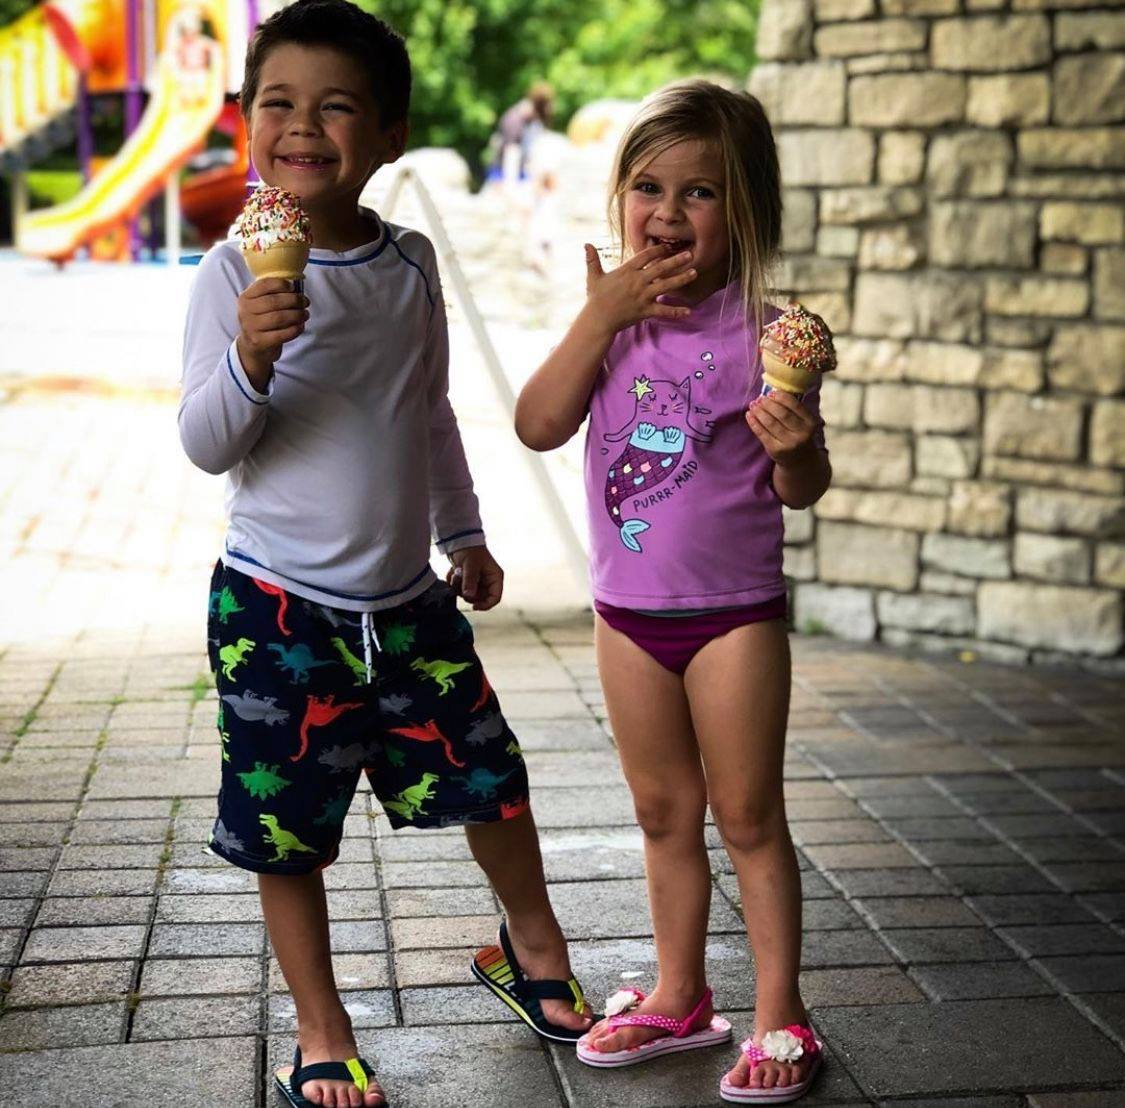 A young boy and a young girl enjoy ice cream on a sunny day.